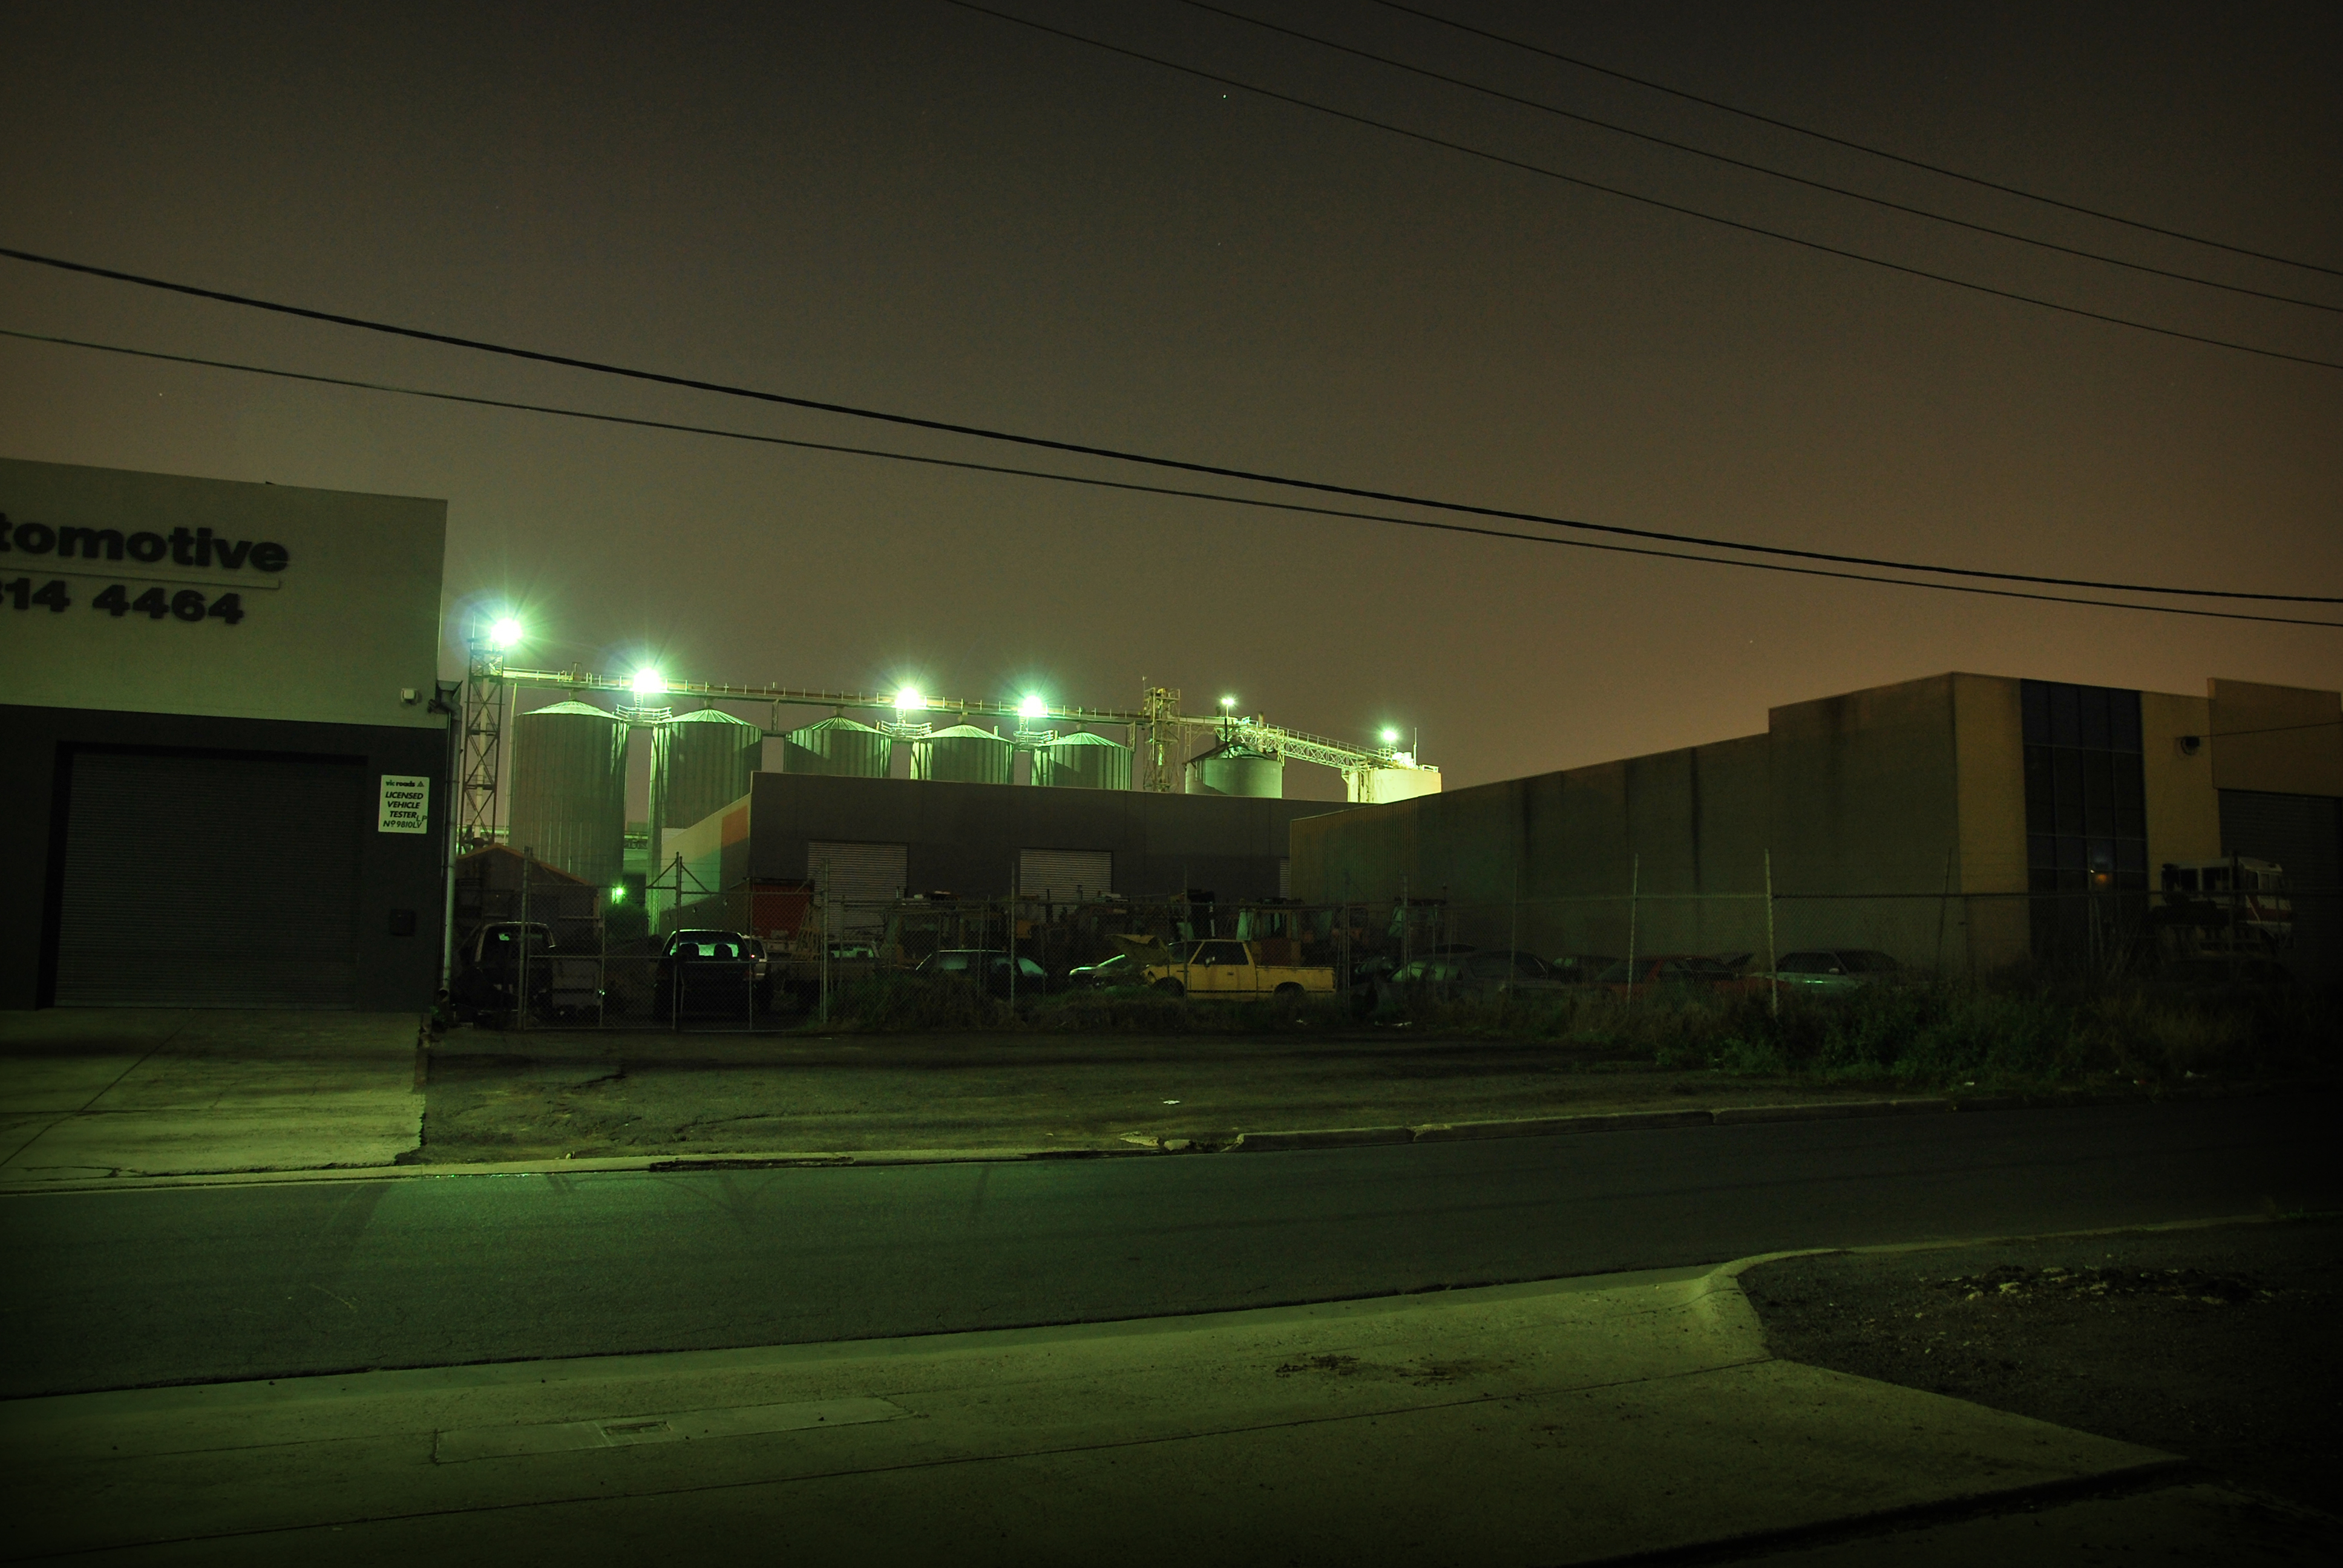 Car Yard in Front of Silos